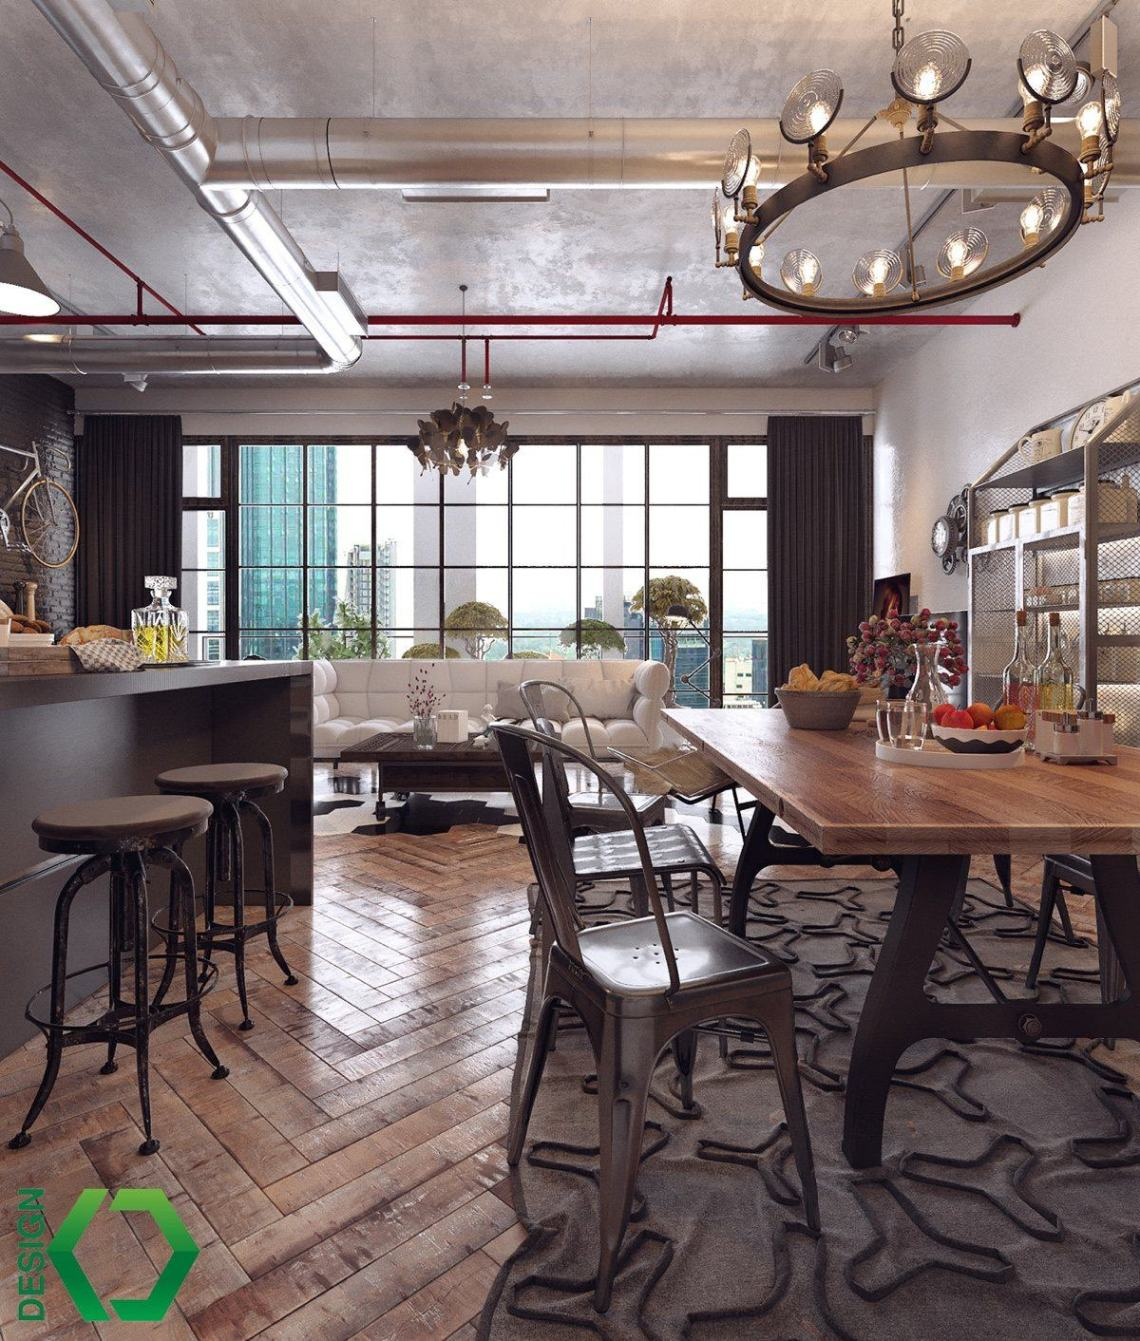 Image Result For Dining Room In Spanish